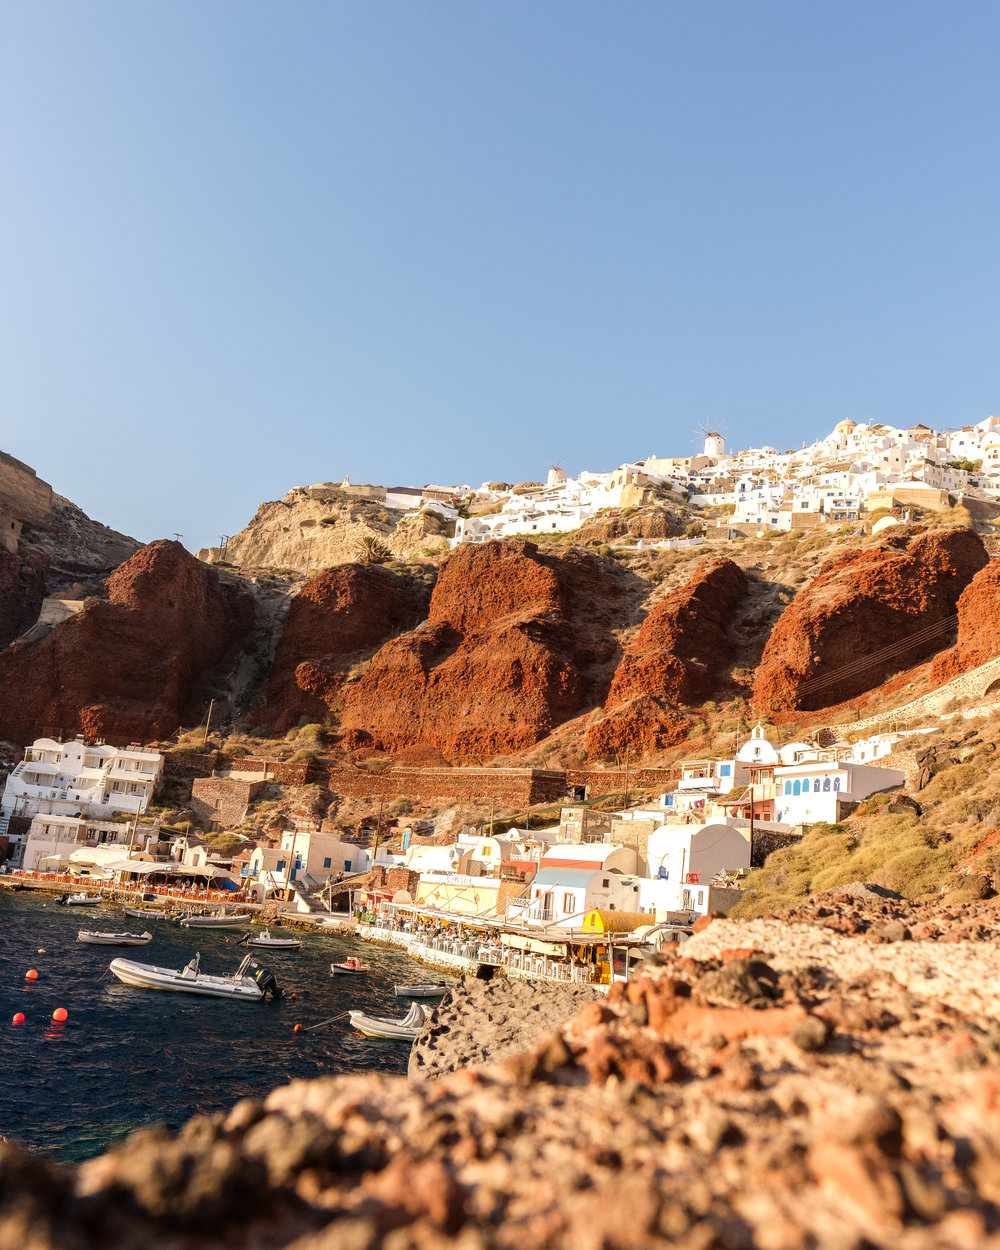 View of Oia from the bottom. Time to climb the stairs back